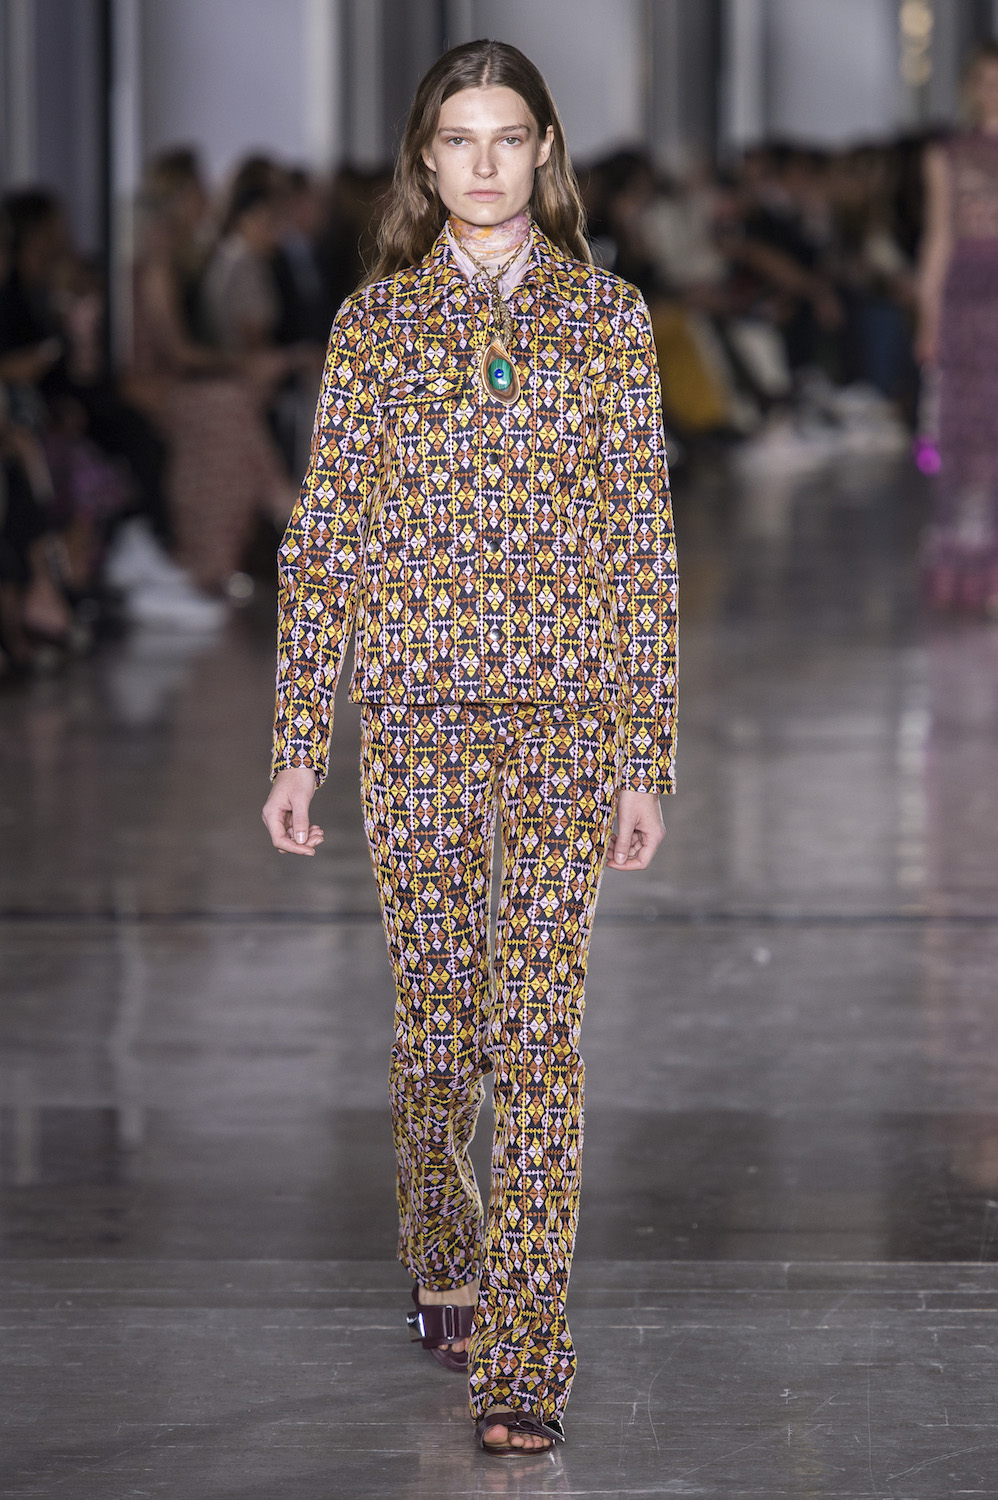 Tired of Trends and Ironic Fashion? Turn to Giambattista Valli